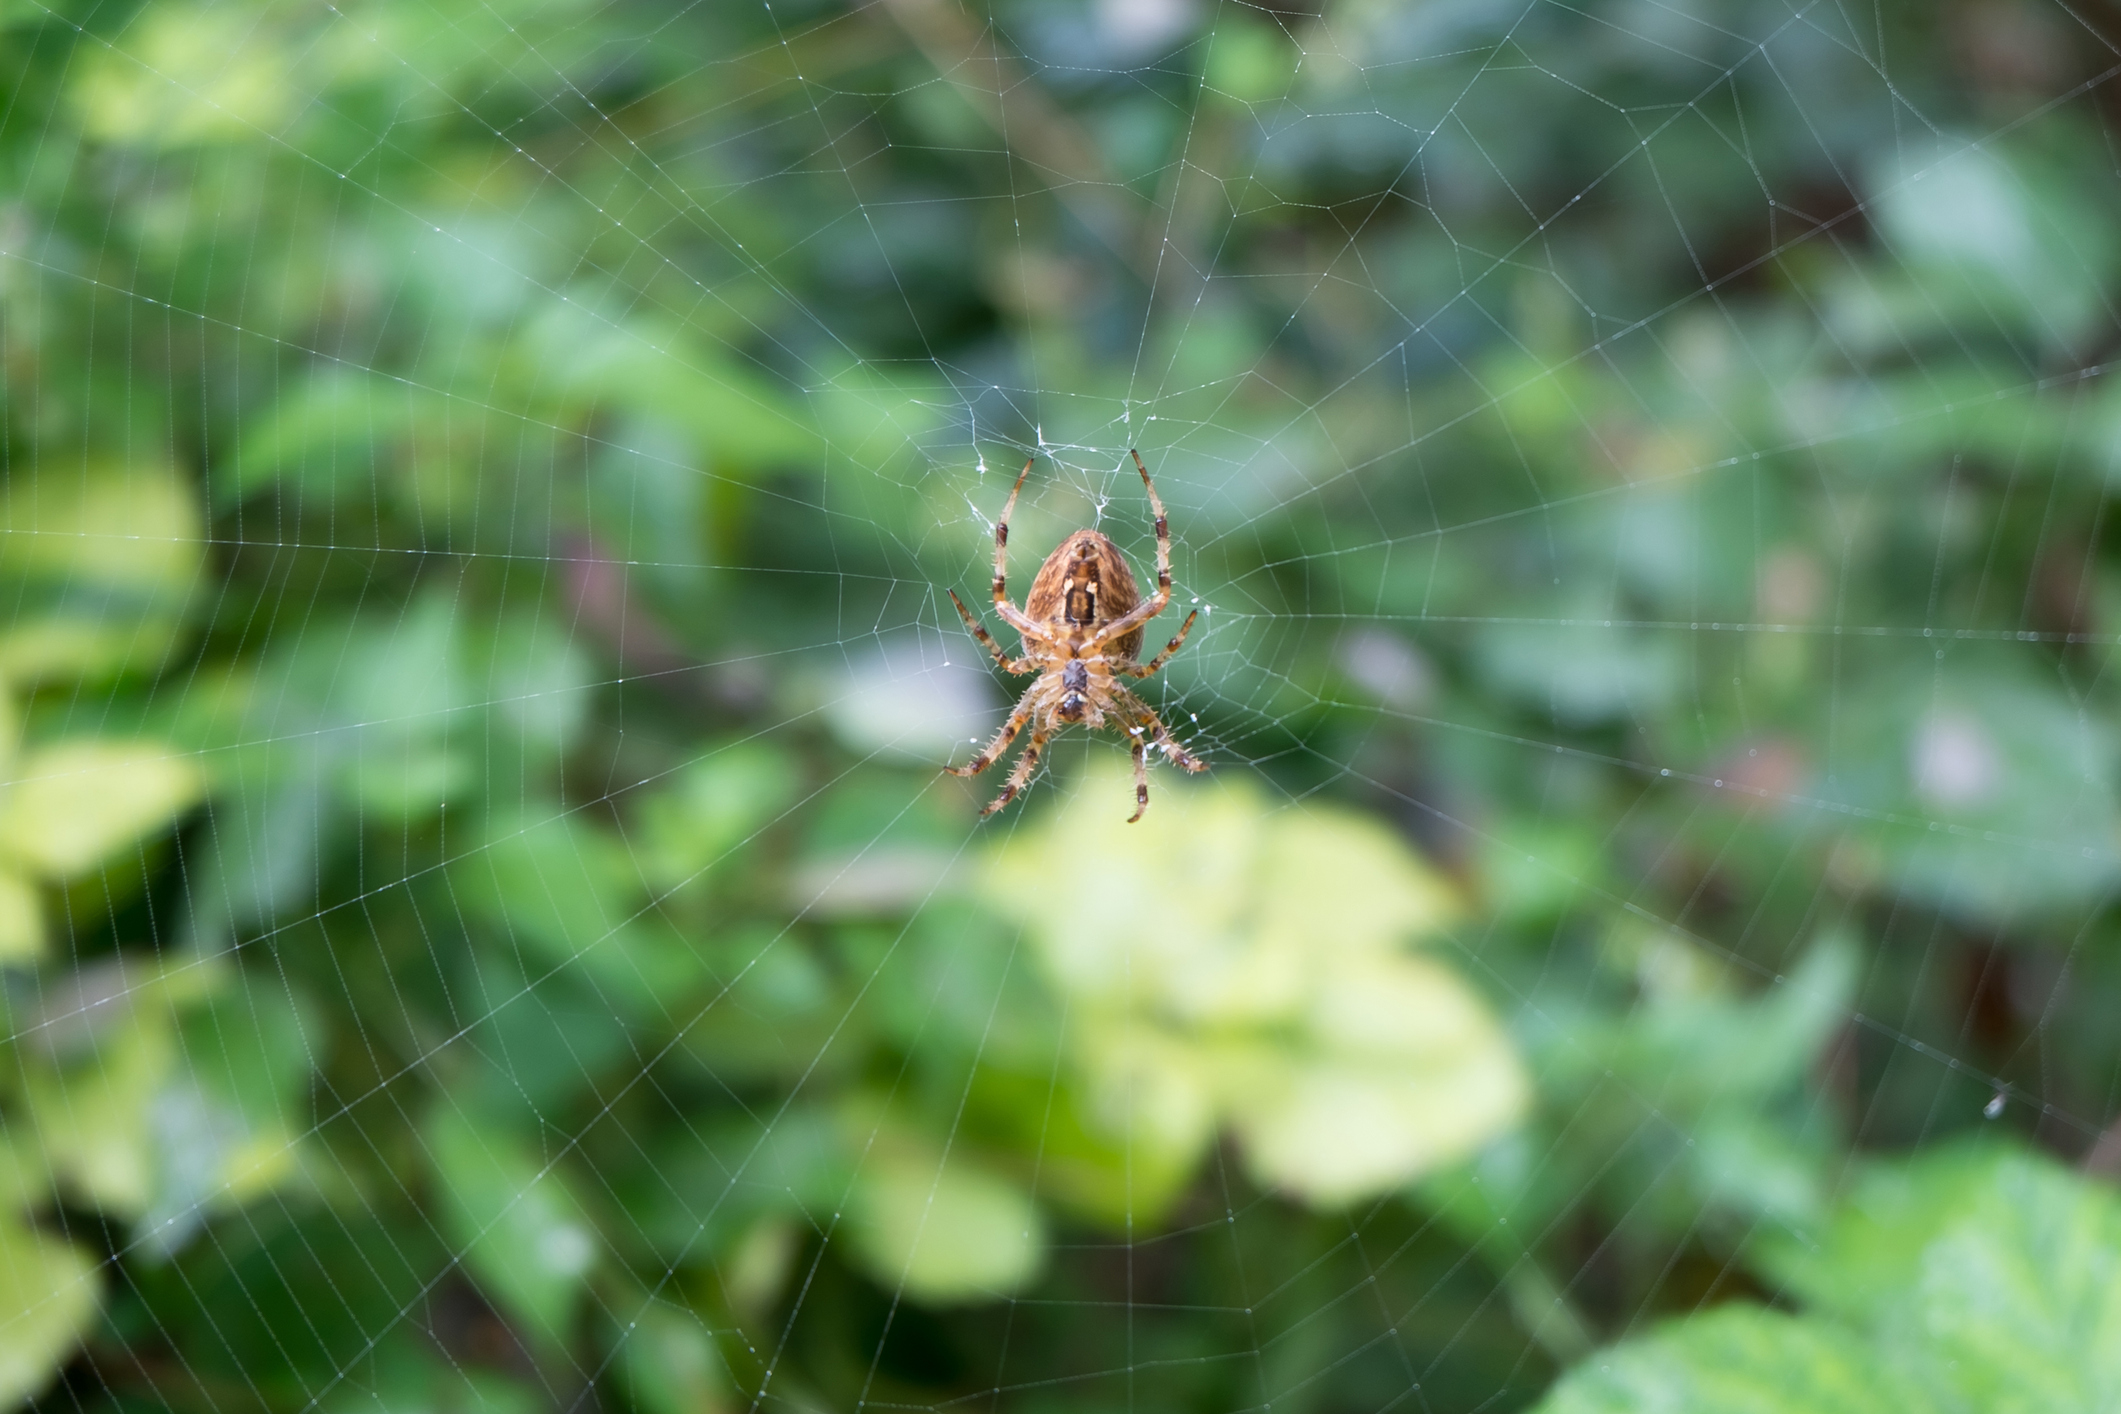 Brown Recluse Spider Image 02